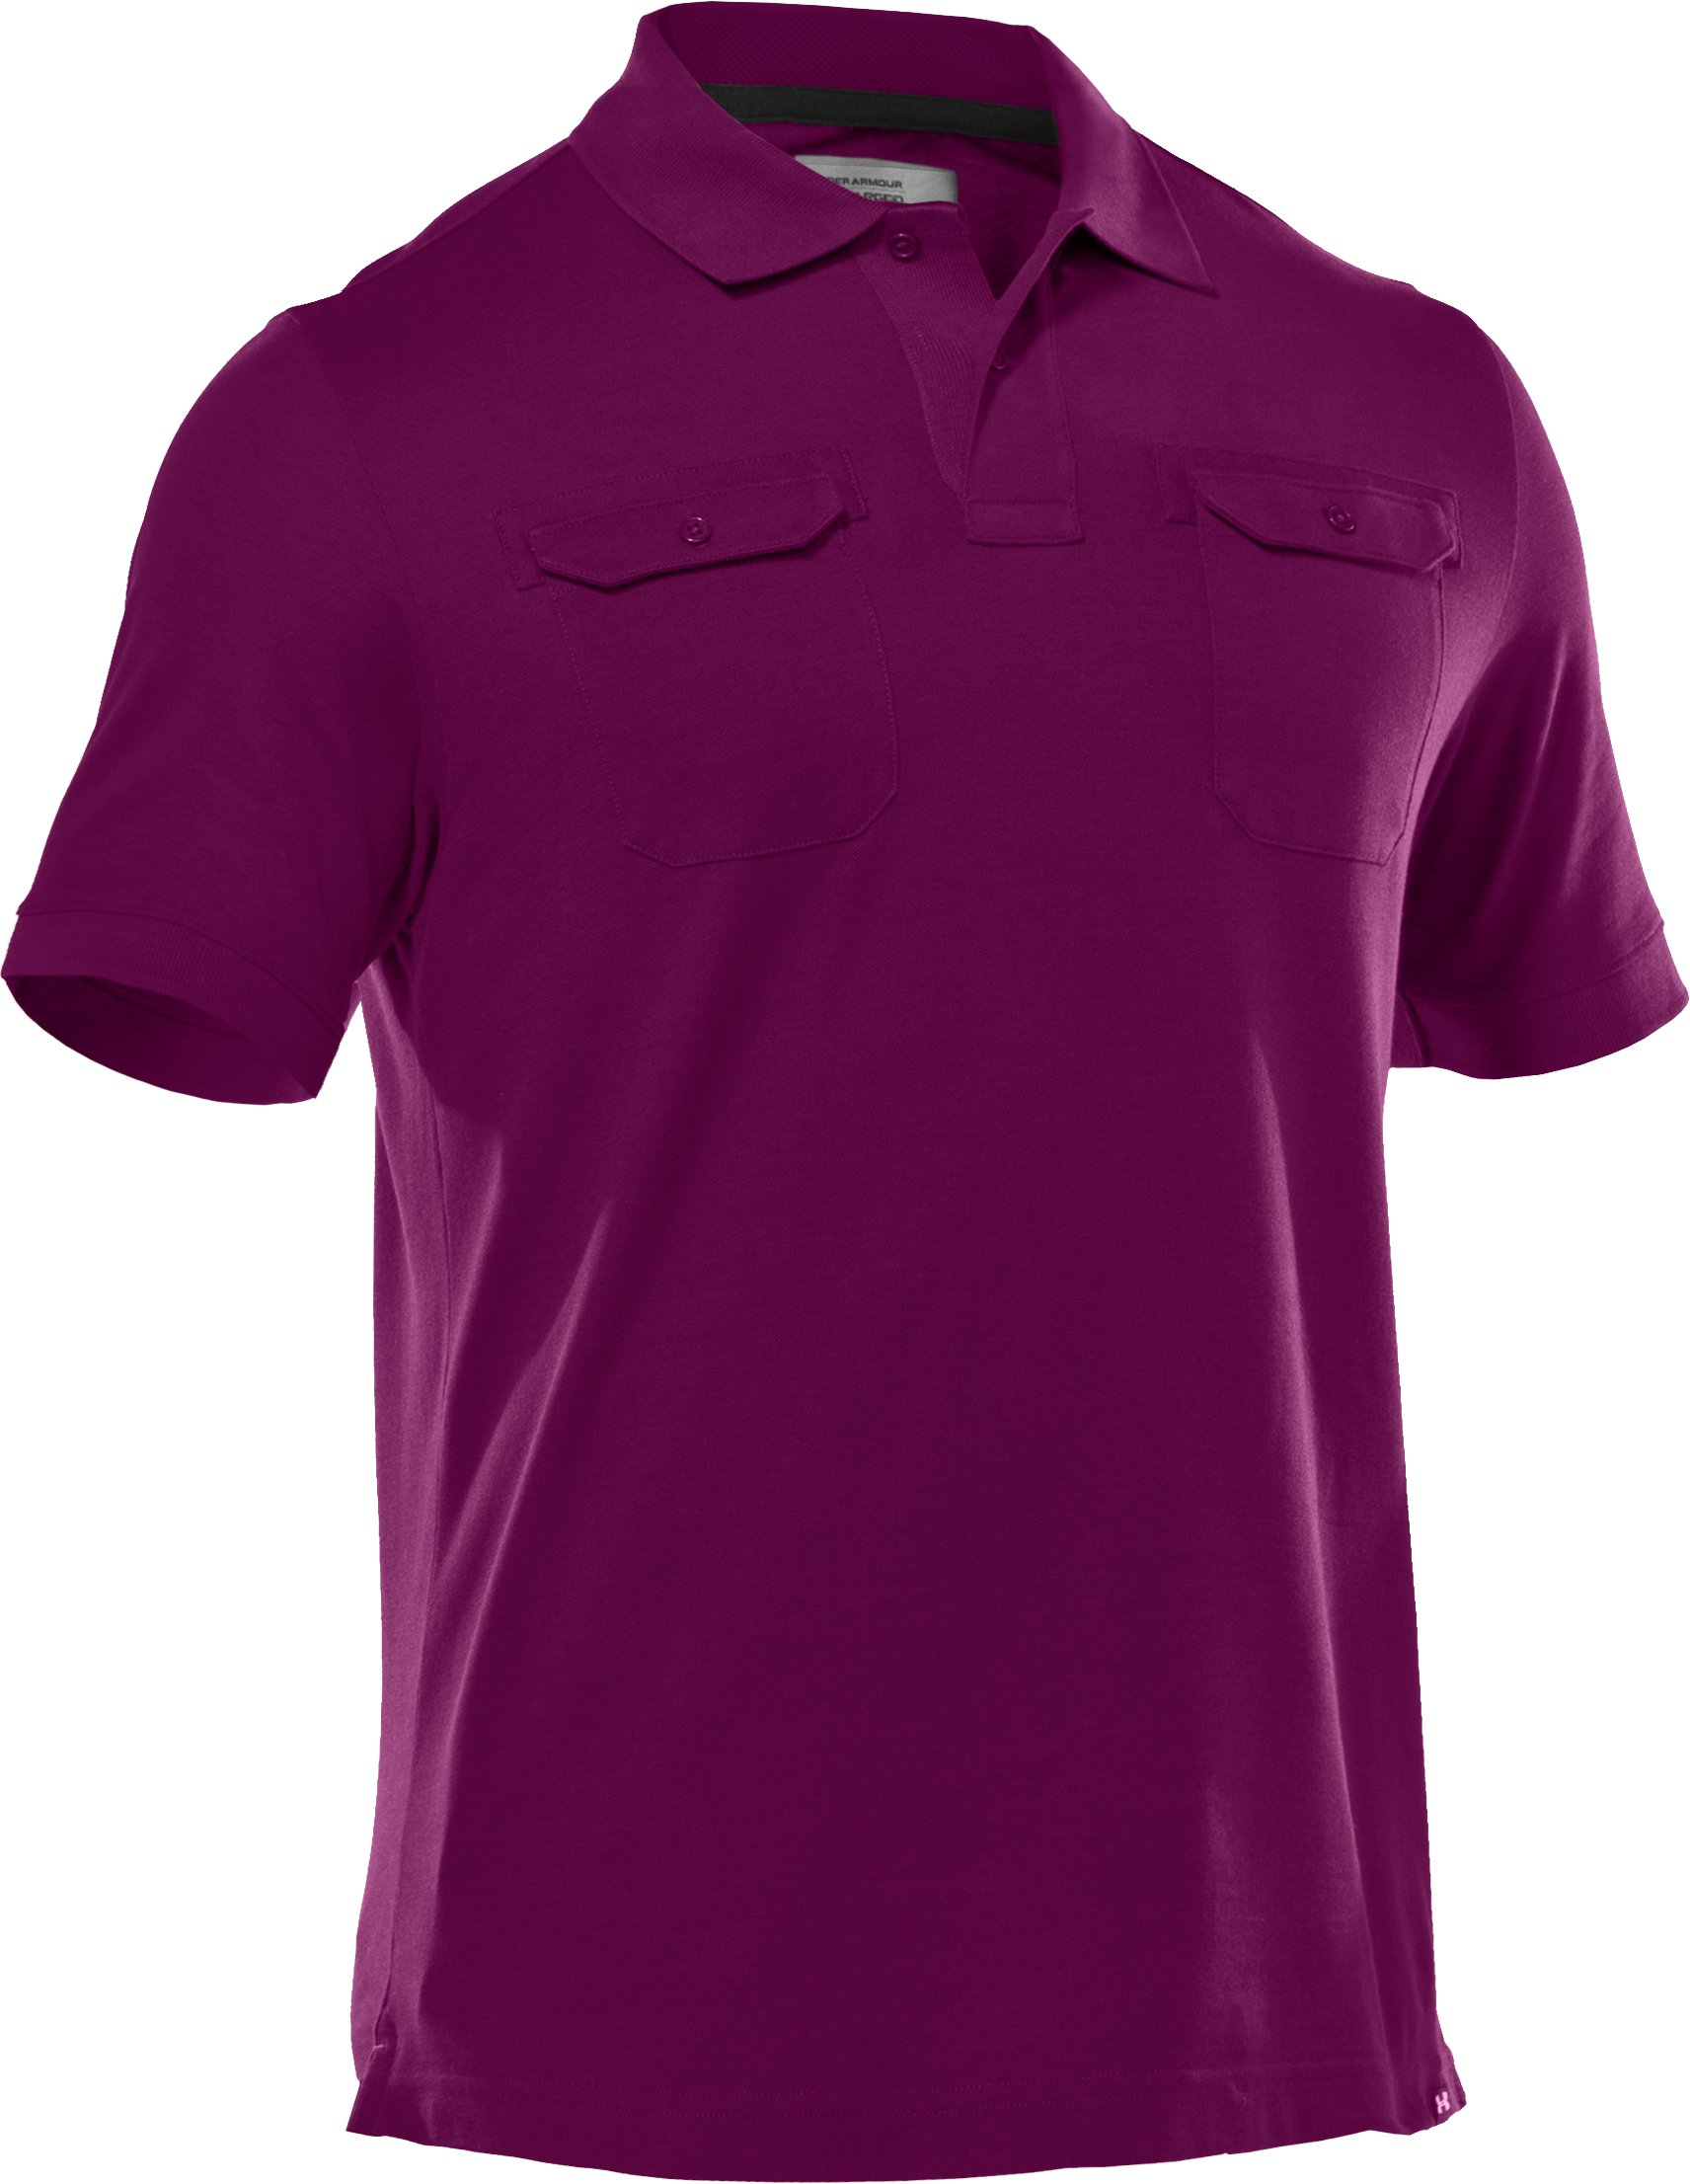 Men's Charged Cotton® Pique Pocket Polo, Beet,